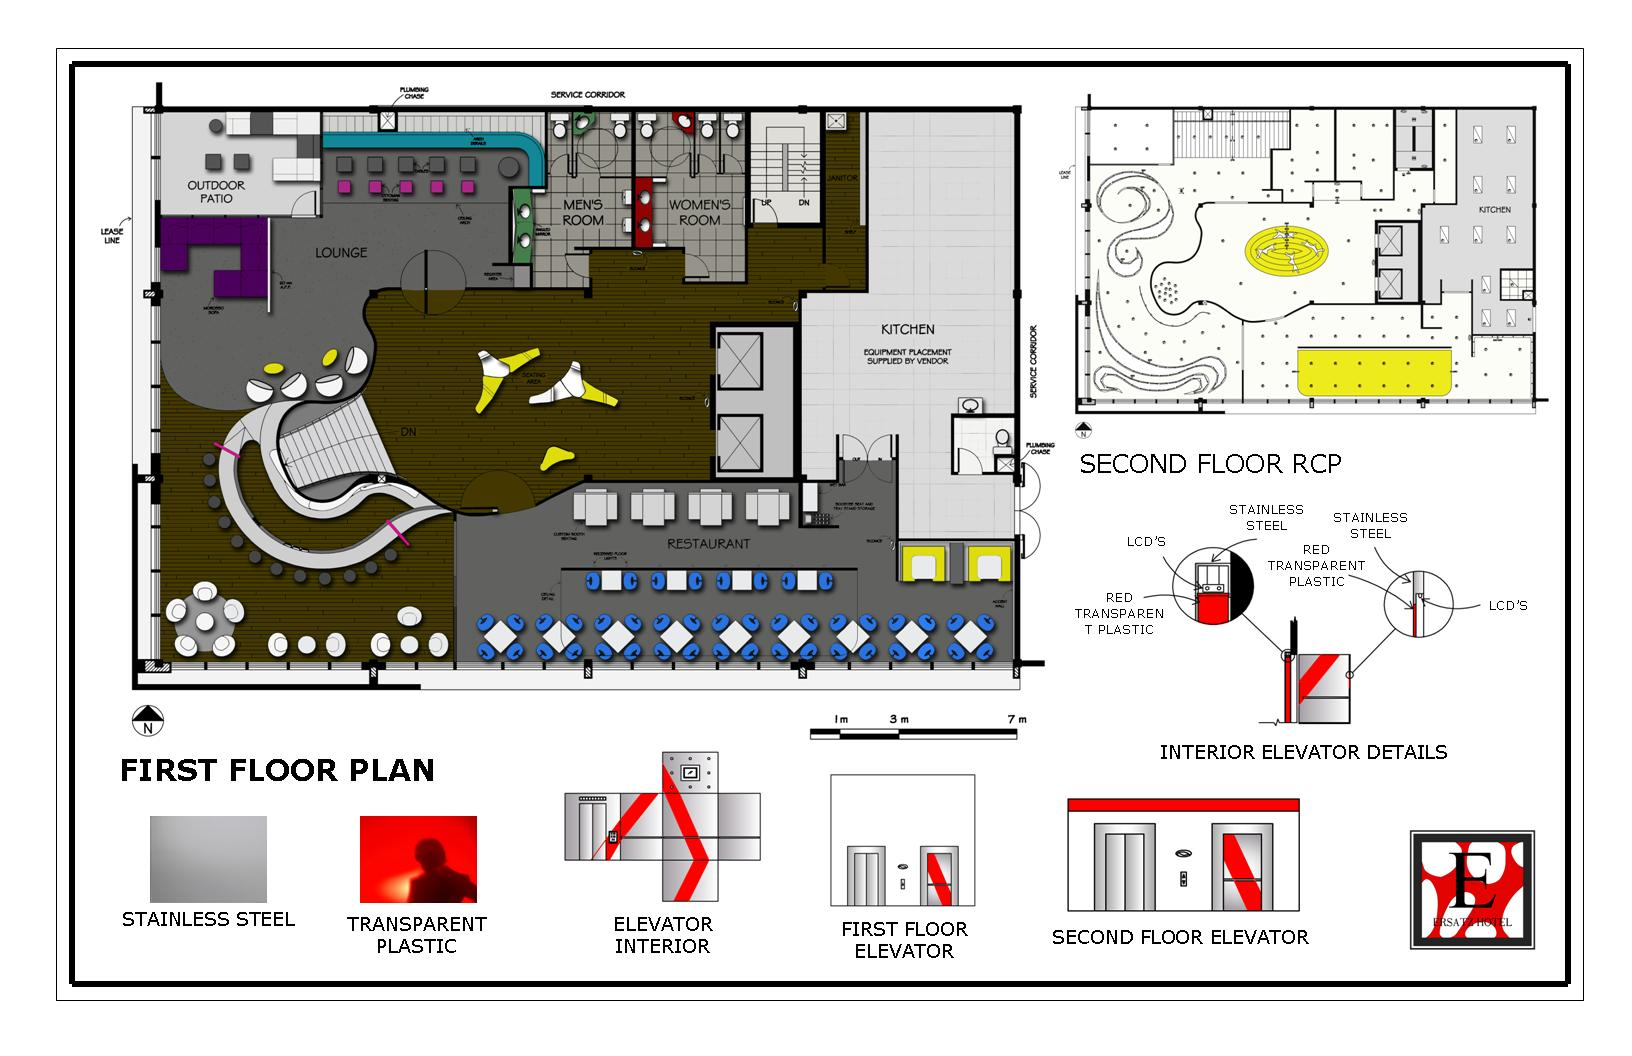 portfolio by carolann bond at coroflot com hotel second floor r c p and elevator second floor plan with a reflected ceiling plan the elevator for the hotel is also shown with an elevation of